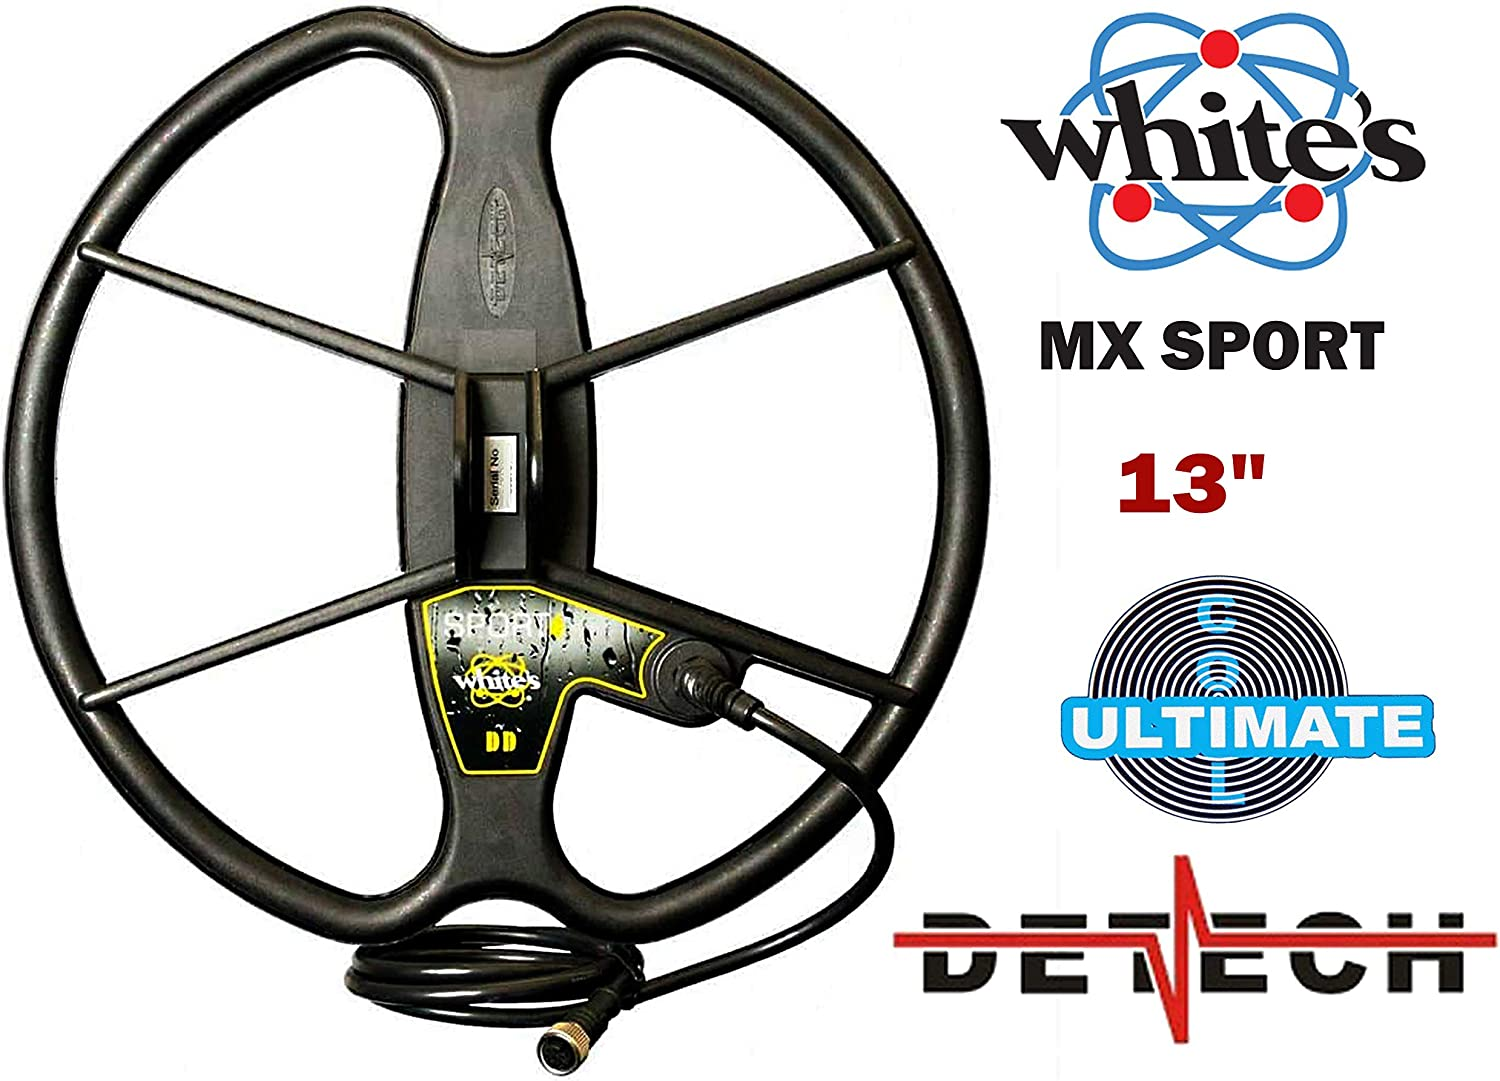 Detector de metales MX Sport de Whites: Amazon.es: Jardín